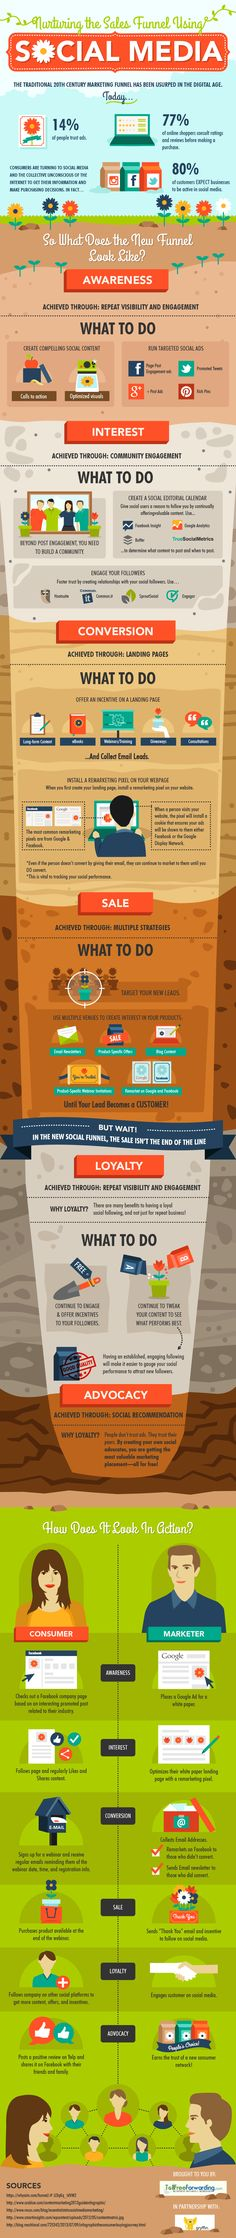 Nurturing the Sales Funnel Using Social Media    #infographic #SocialMedia #Sales